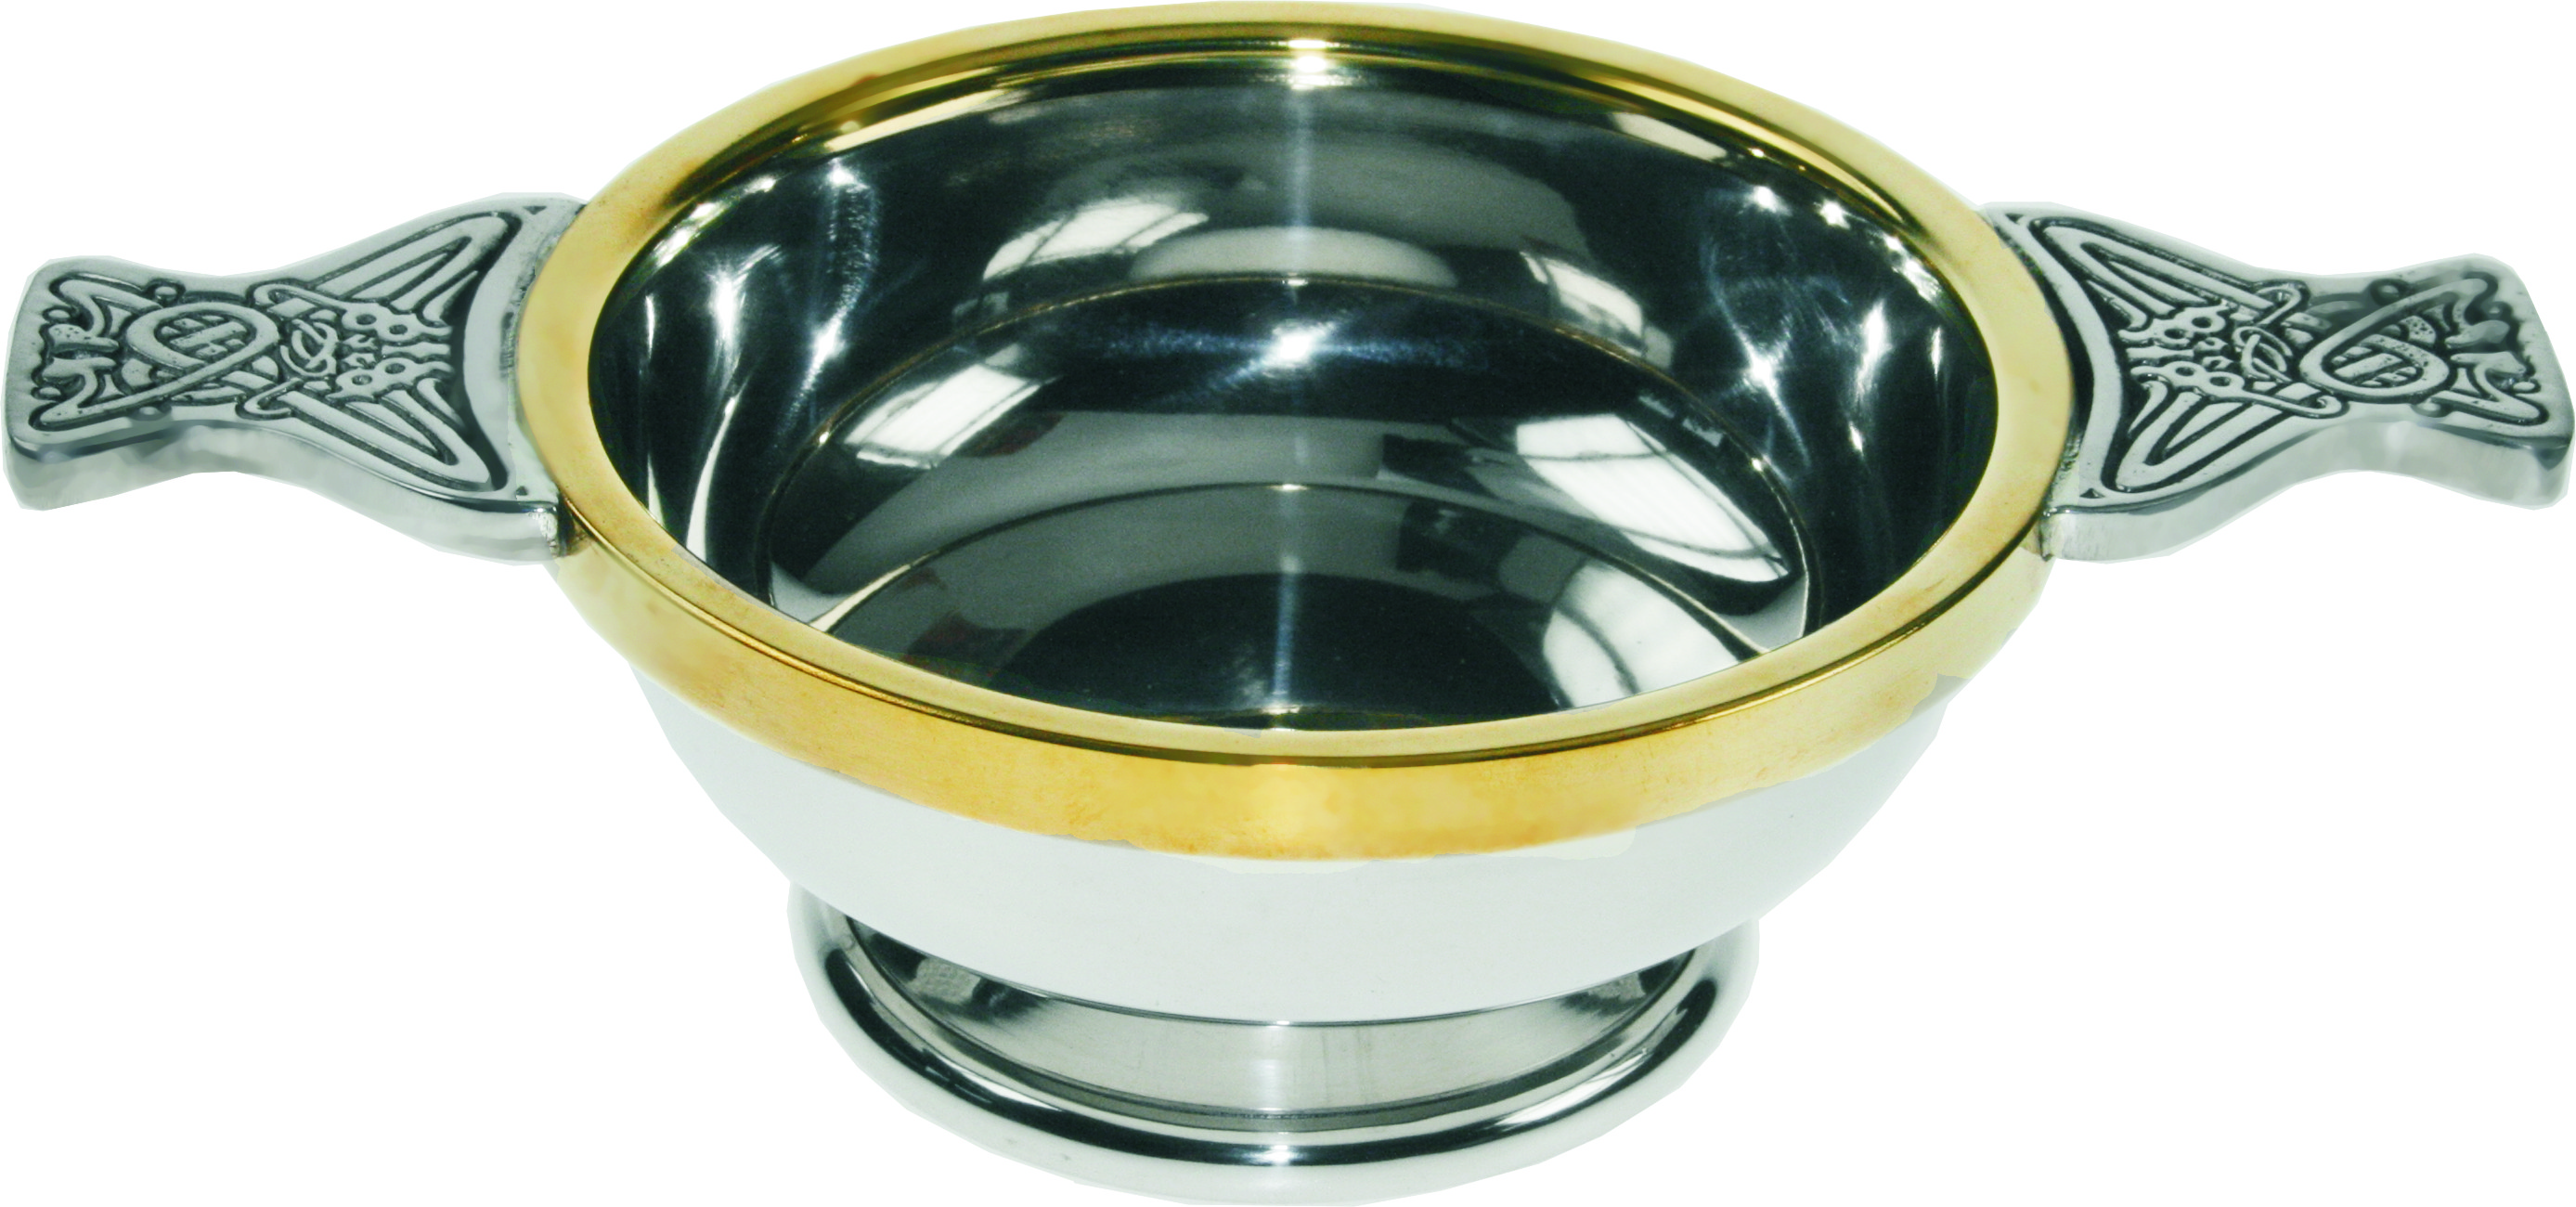 "Pewter Quaich Bowl with Brass Rim and Celtic Patterned Handle 10cm (4"")"